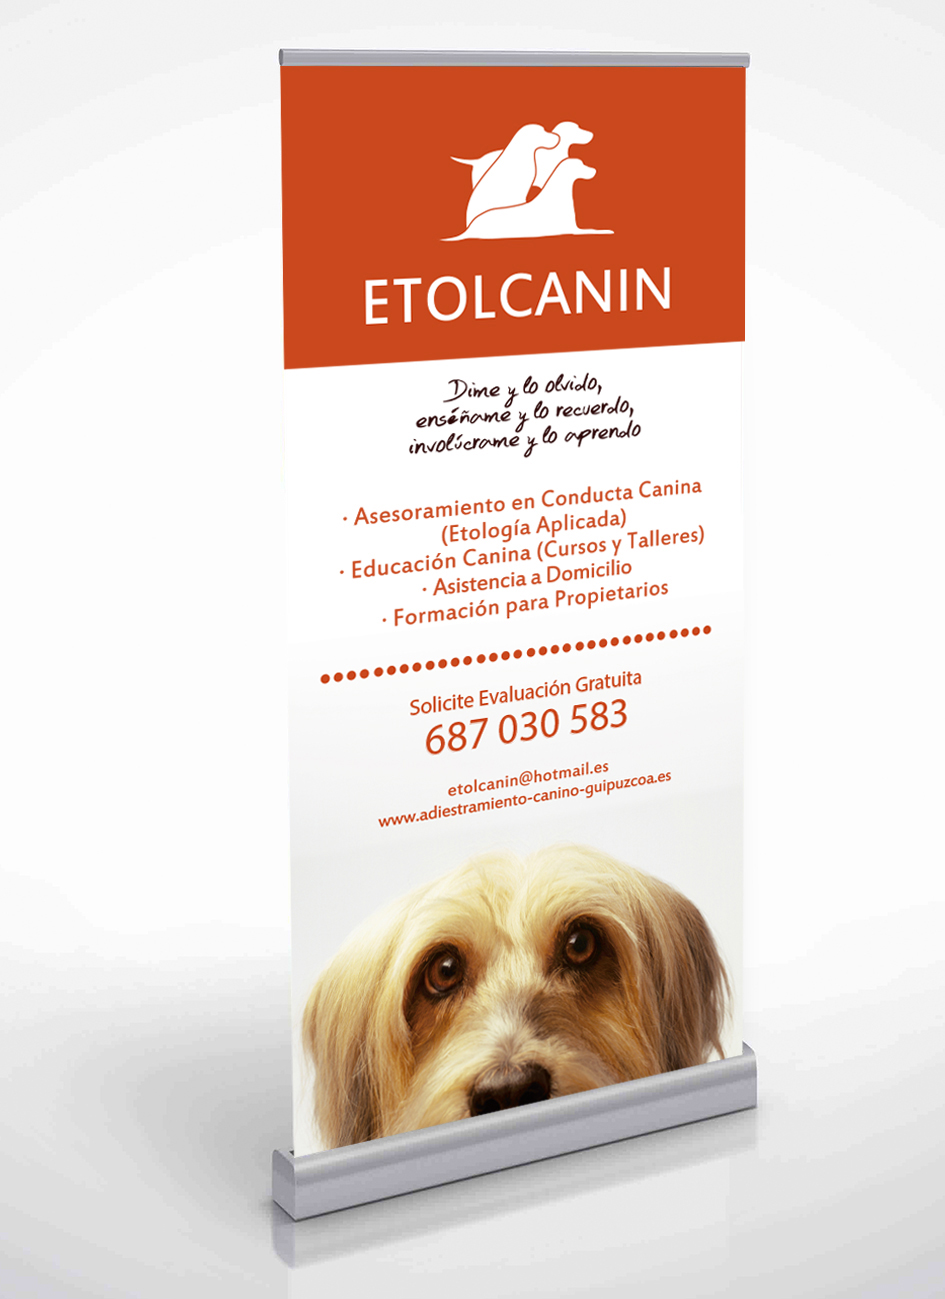 Roll-Up Etolcanin